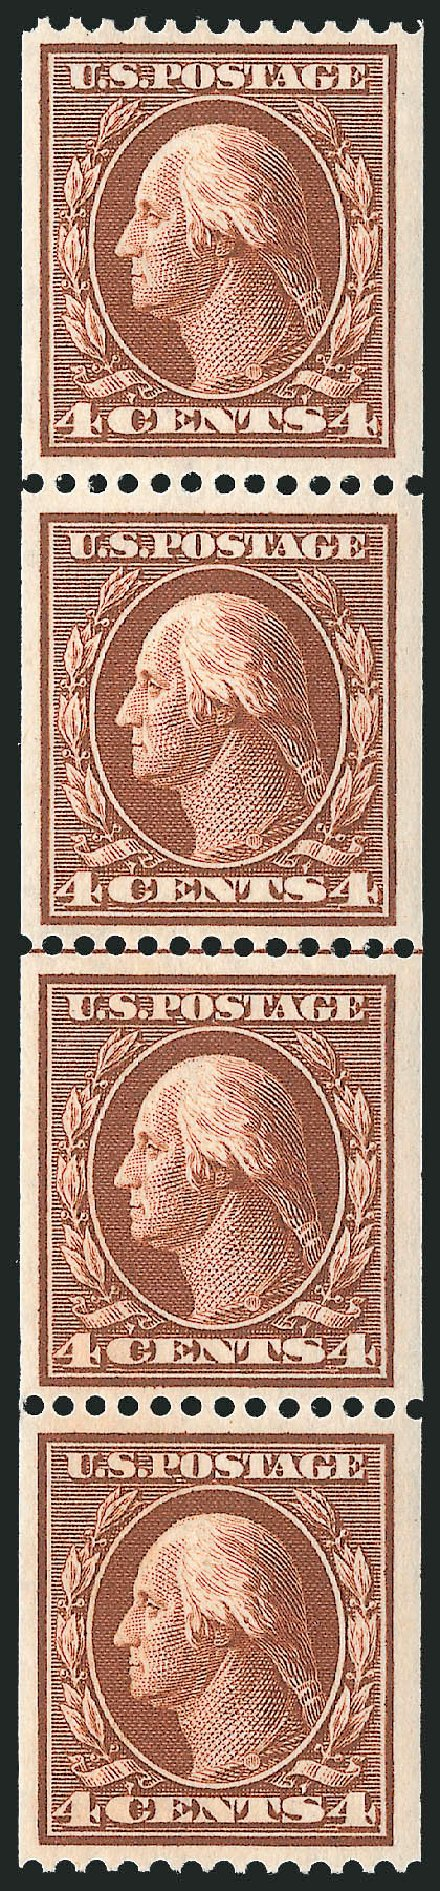 US Stamps Price Scott Cat. #350 - 4c 1910 Washington Coil. Robert Siegel Auction Galleries, Feb 2015, Sale 1093, Lot 117